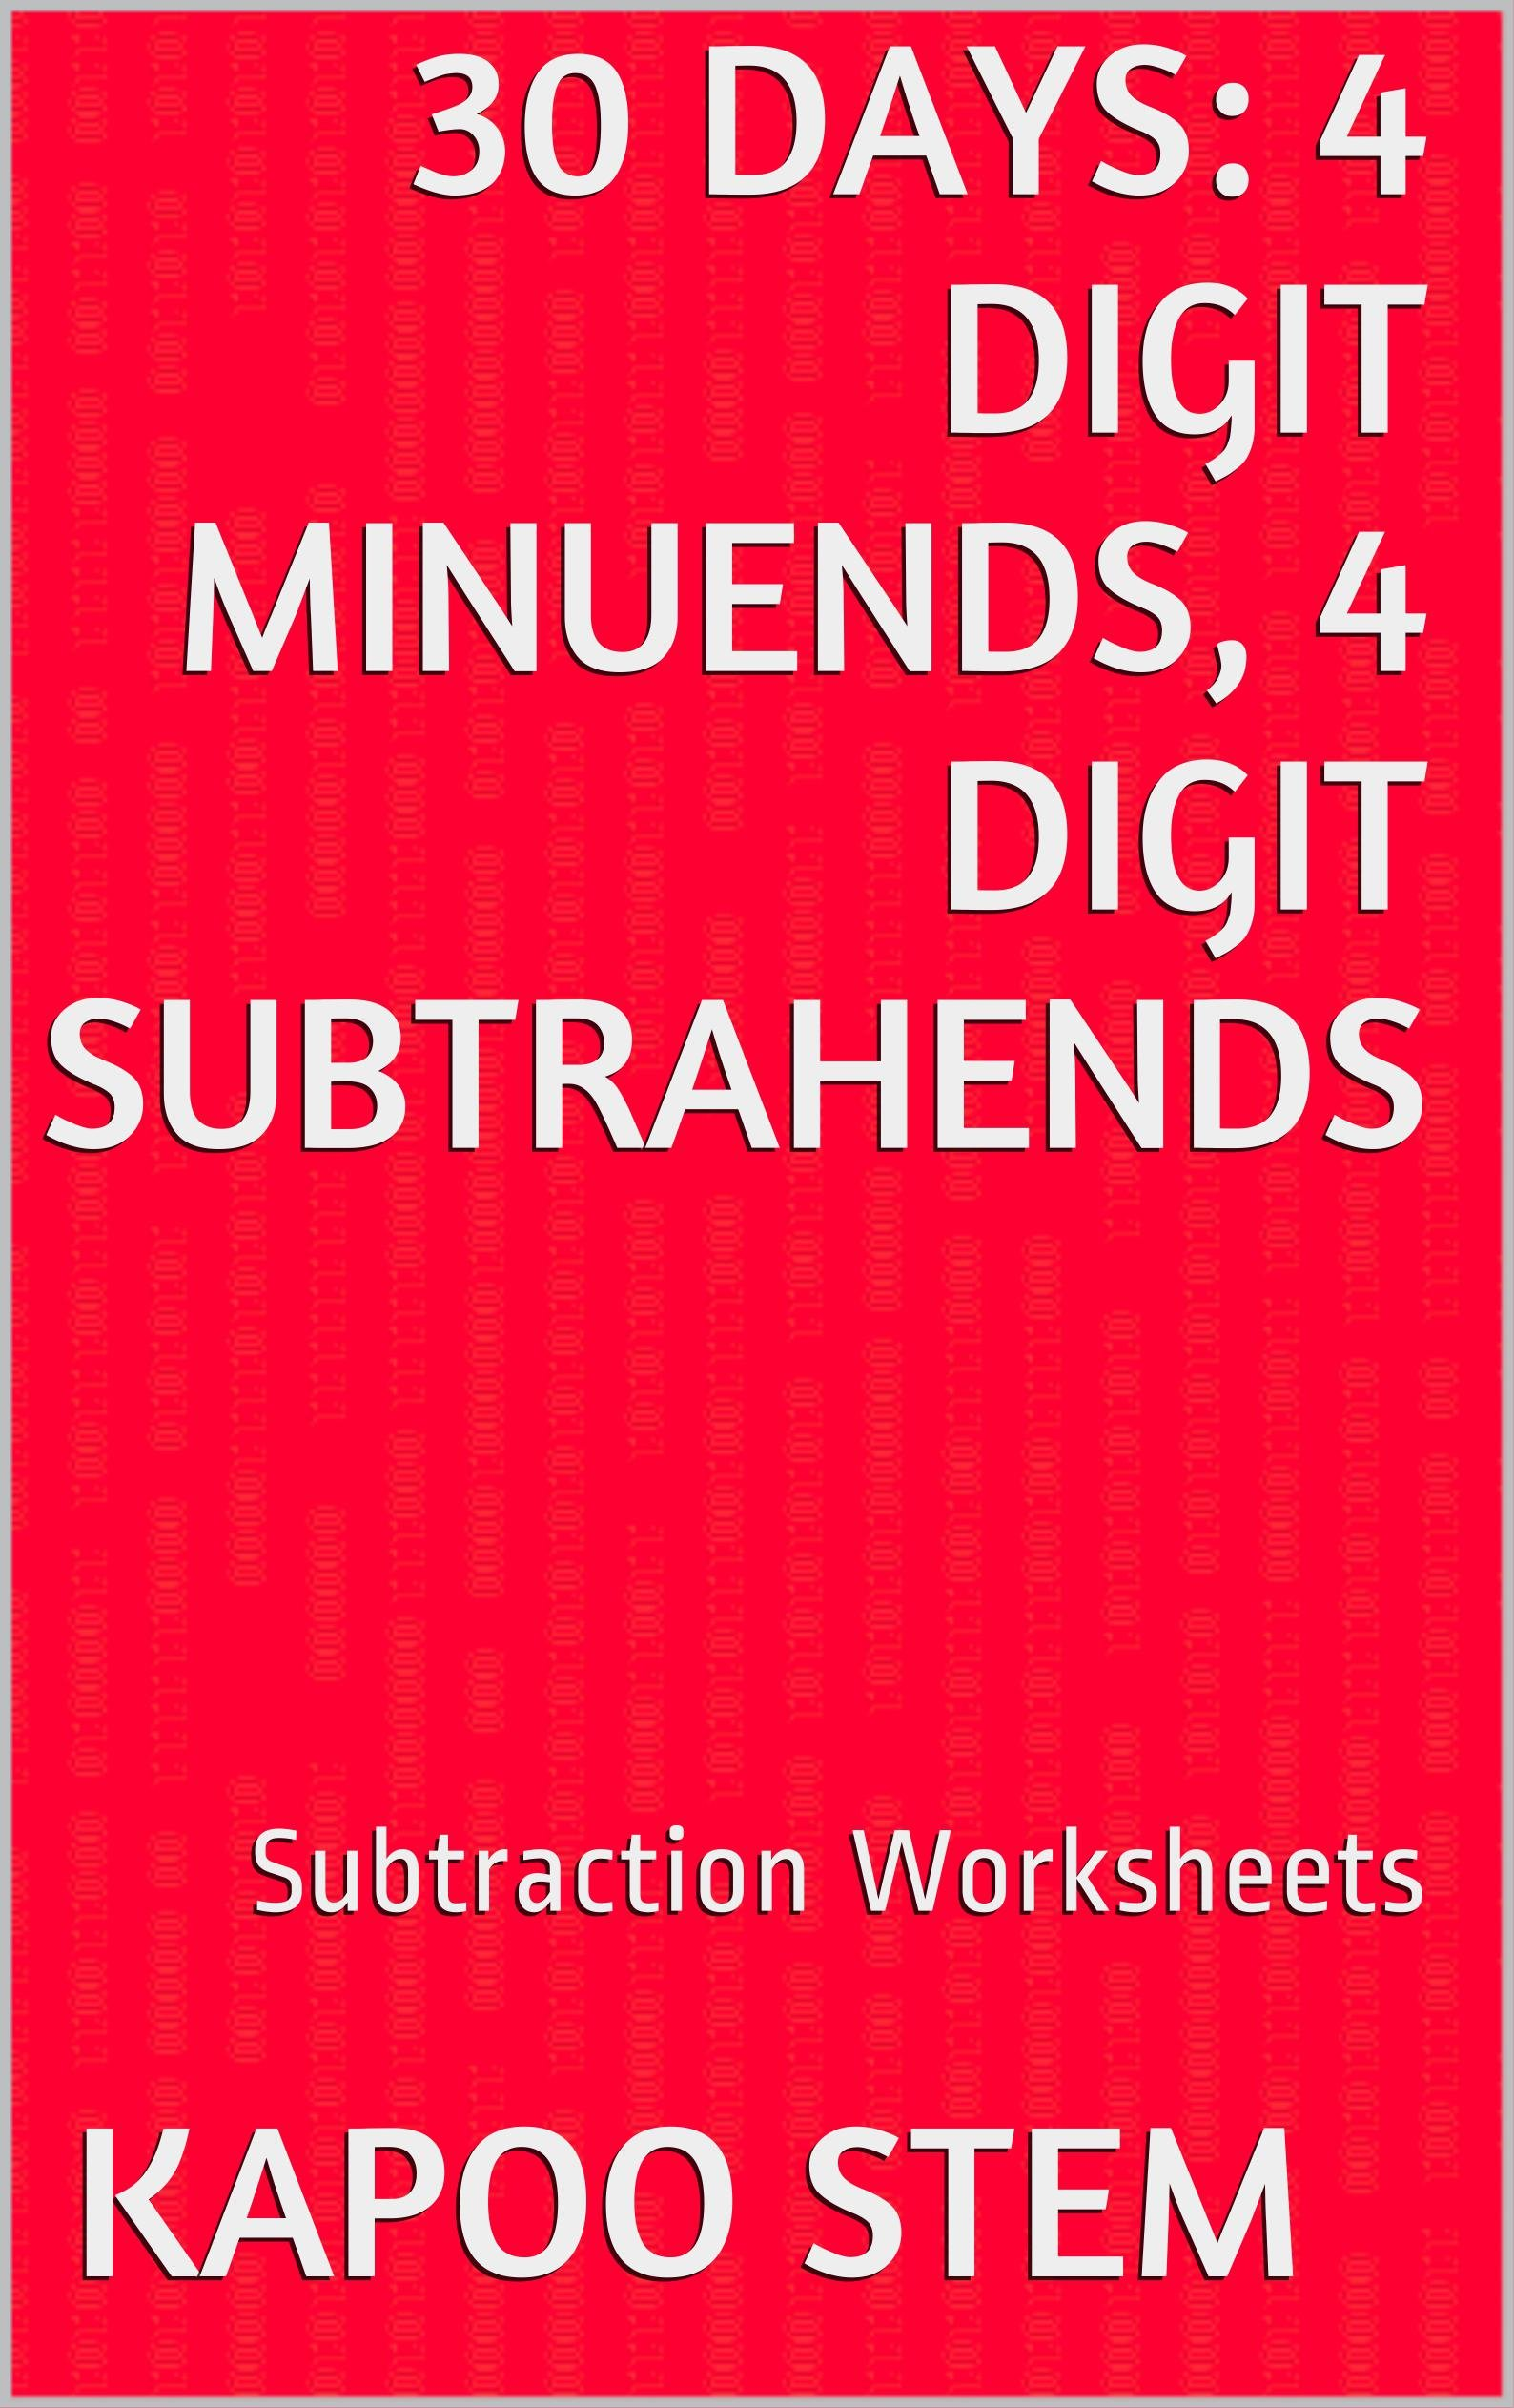 30 Subtraction Worksheets With 4 Digit Minuends 4 Digit